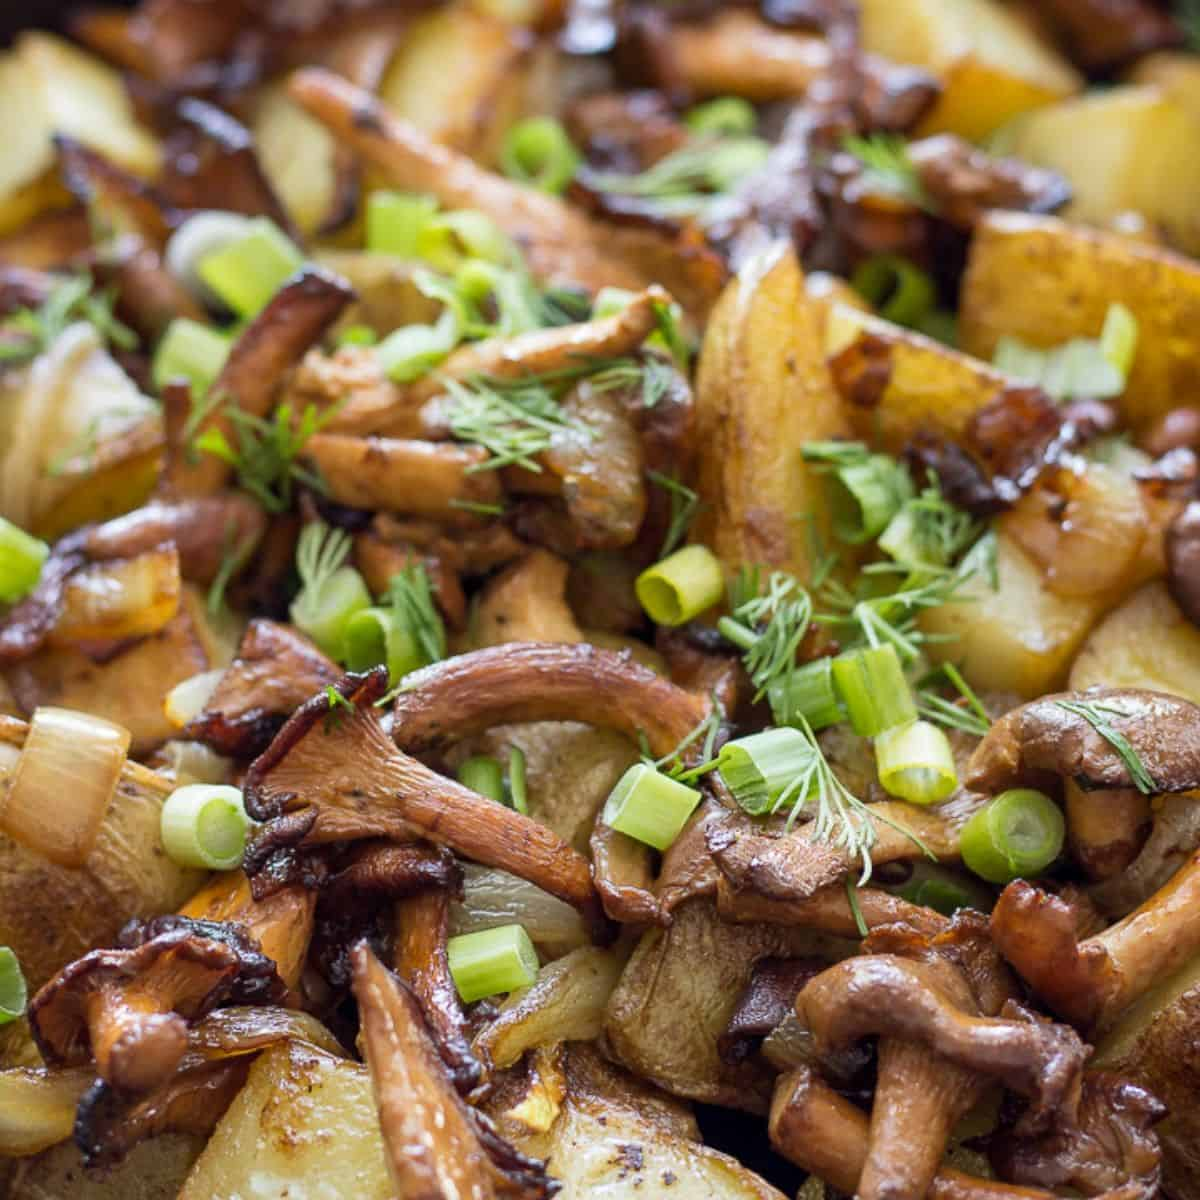 Fried Chanterelle mushrooms and potatoes in a pan